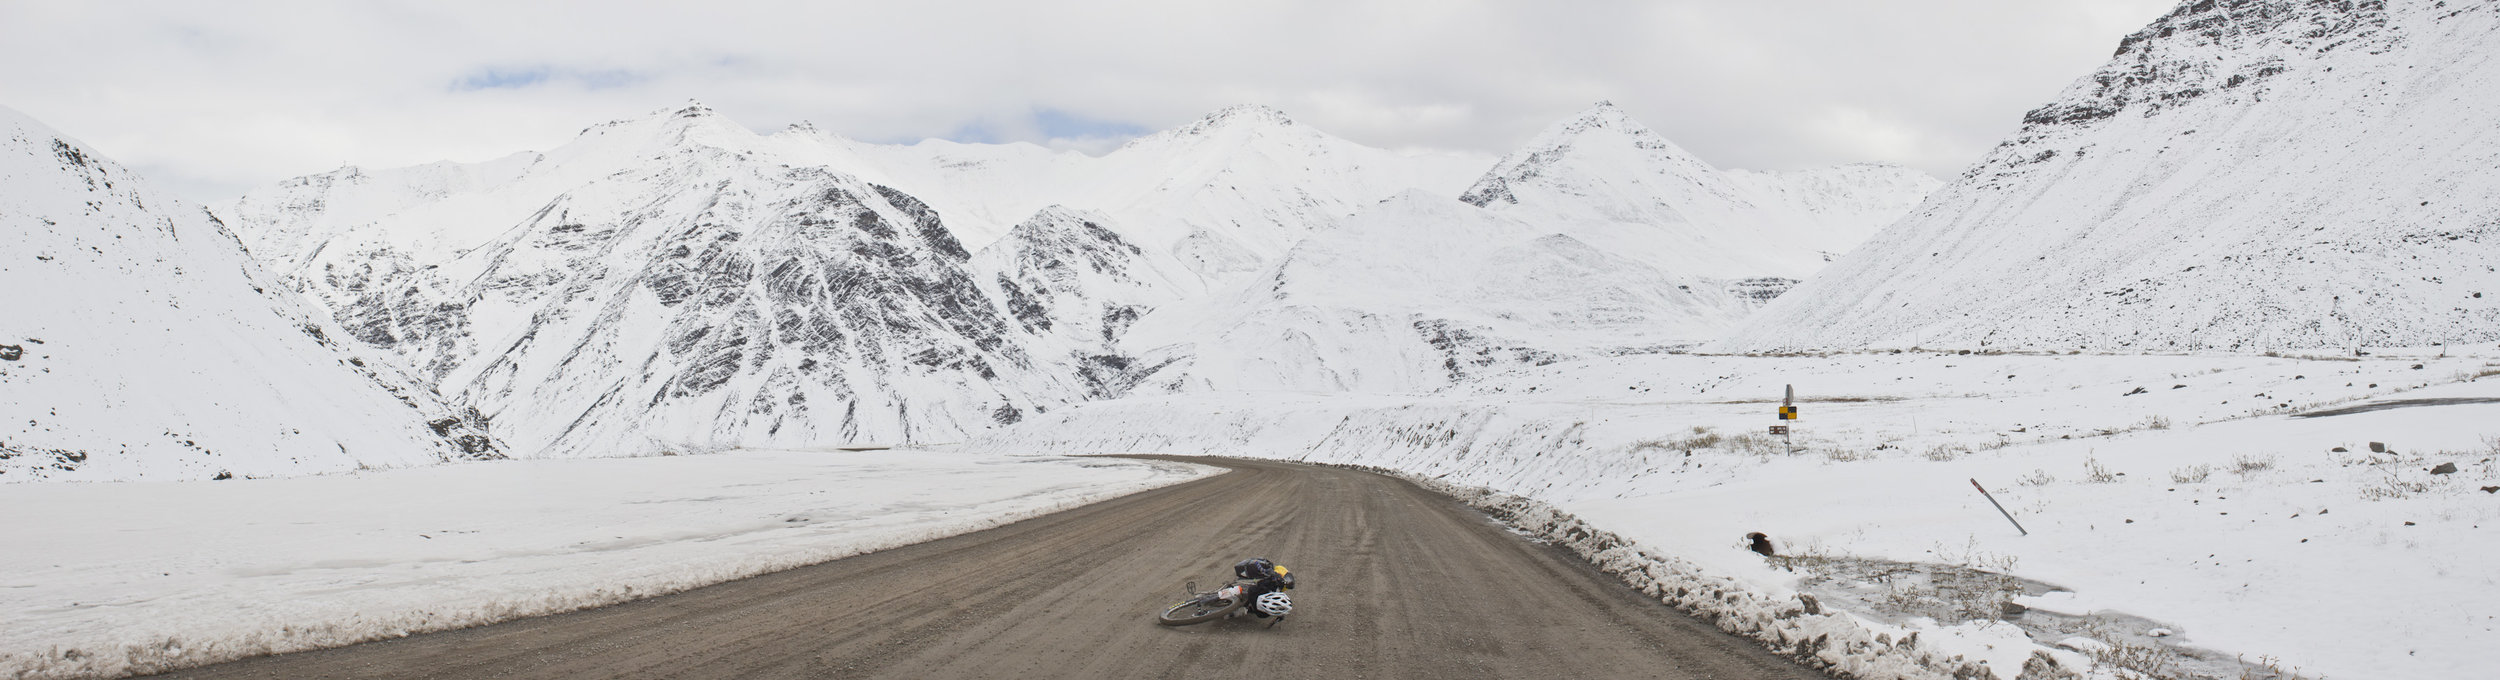 Atigun Pass in Alaska's Brooks Range. The highest pass on the Alaska road system and the northernmost mountains in North America. An early and unexpected fall snowstorm blanketed the mountains.